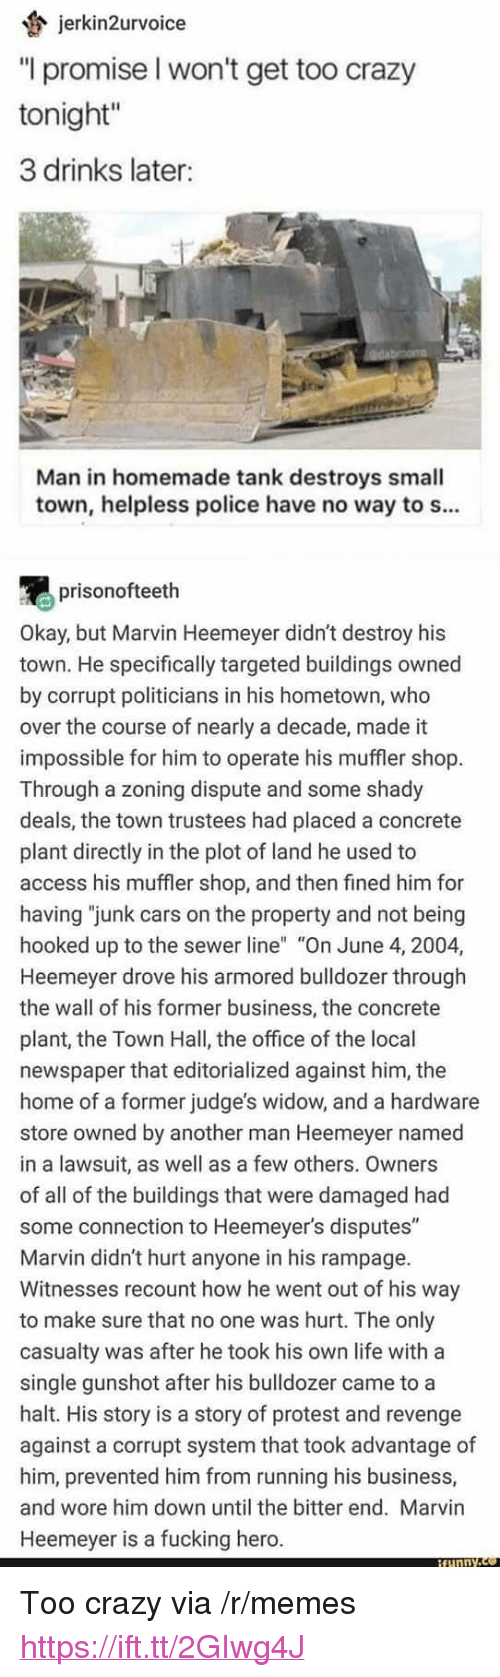 "Cars, Crazy, and Fucking: jerkin2urvoice  ""l promise l won't get too crazy  tonight""  3 drinks later:  Man in homemade tank destroys small  town, helpless police have no way to s...  prisonofteeth  Okay, but Marvin Heemeyer didn't destroy his  town. He specifically targeted buildings owned  by corrupt politicians in his hometown, who  over the course of nearly a decade, made it  impossible for him to operate his muffler shop  Through a zoning dispute and some shady  deals, the town trustees had placed a concrete  plant directly in the plot of land he used to  access his muffler shop, and then fined him for  having ""junk cars on the property and not being  hooked up to the sewer line"" ""On June 4, 2004,  Heemeyer drove his armored bulldozer through  the wall of his former business, the concrete  plant, the Town Hall, the office of the local  newspaper that editorialized against him, the  home of a former judge's widow, and a hardware  store owned by another man Heemeyer named  in a lawsuit, as well as a few others. Owners  of all of the buildings that were damaged had  some connection to Heemeyer's disputes""  Marvin didn't hurt anyone in his rampage.  Witnesses recount how he went out of his way  to make sure that no one was hurt. The only  casualty was after he took his own life with a  single gunshot after his bulldozer came to a  halt. His story is a story of protest and revenge  against a corrupt system that took advantage of  him, prevented him from running his business,  and wore him down until the bitter end. Marvin  Heemeyer is a fucking hero. <p>Too crazy via /r/memes <a href=""https://ift.tt/2GIwg4J"">https://ift.tt/2GIwg4J</a></p>"